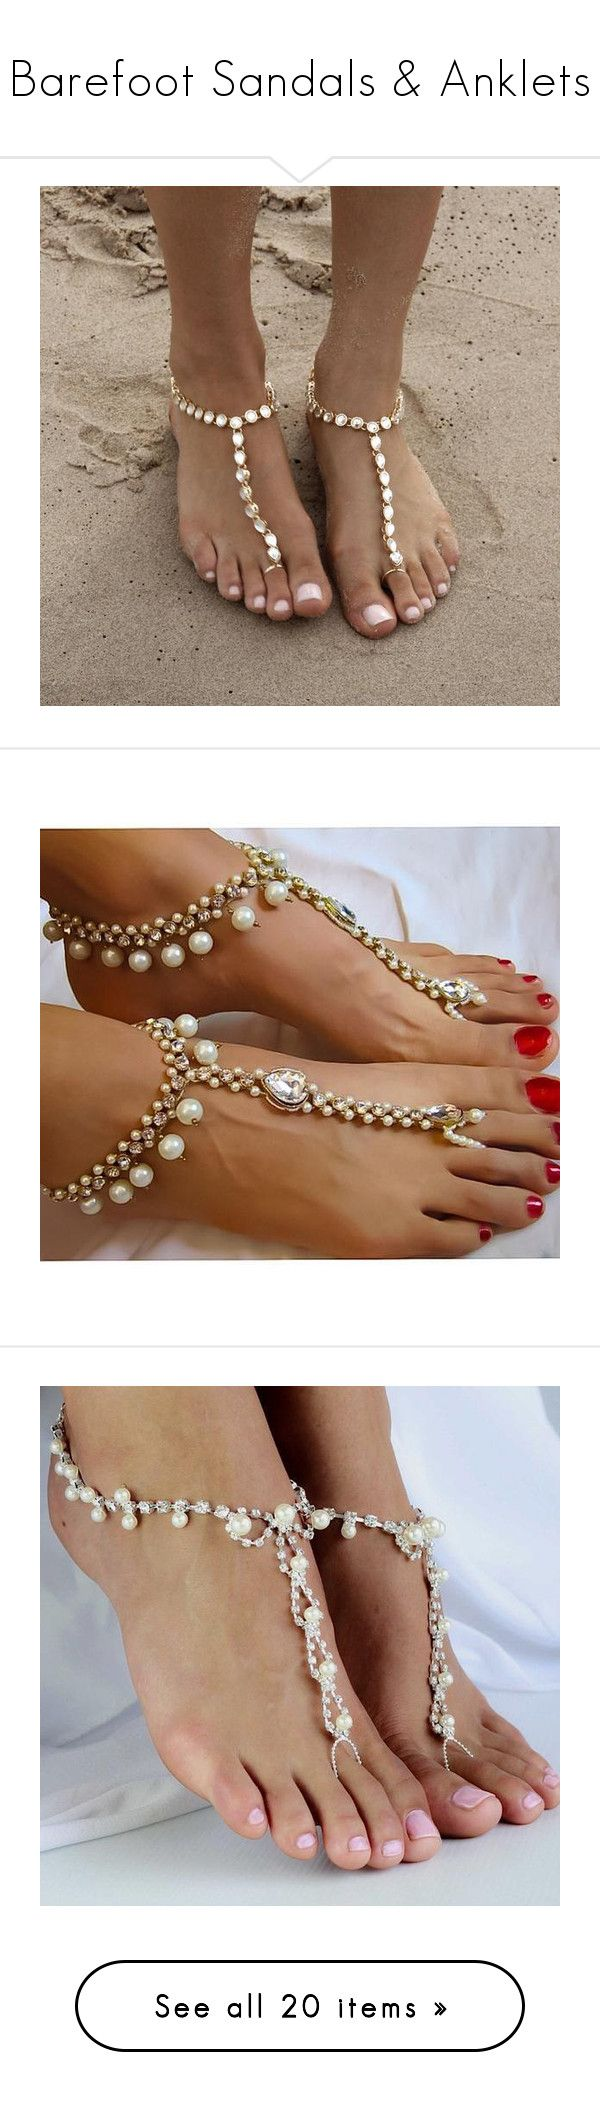 Fashion Anklets Boho Wide Ankle Chain Bracelet Jewelry Indian Bare Foot Sandals